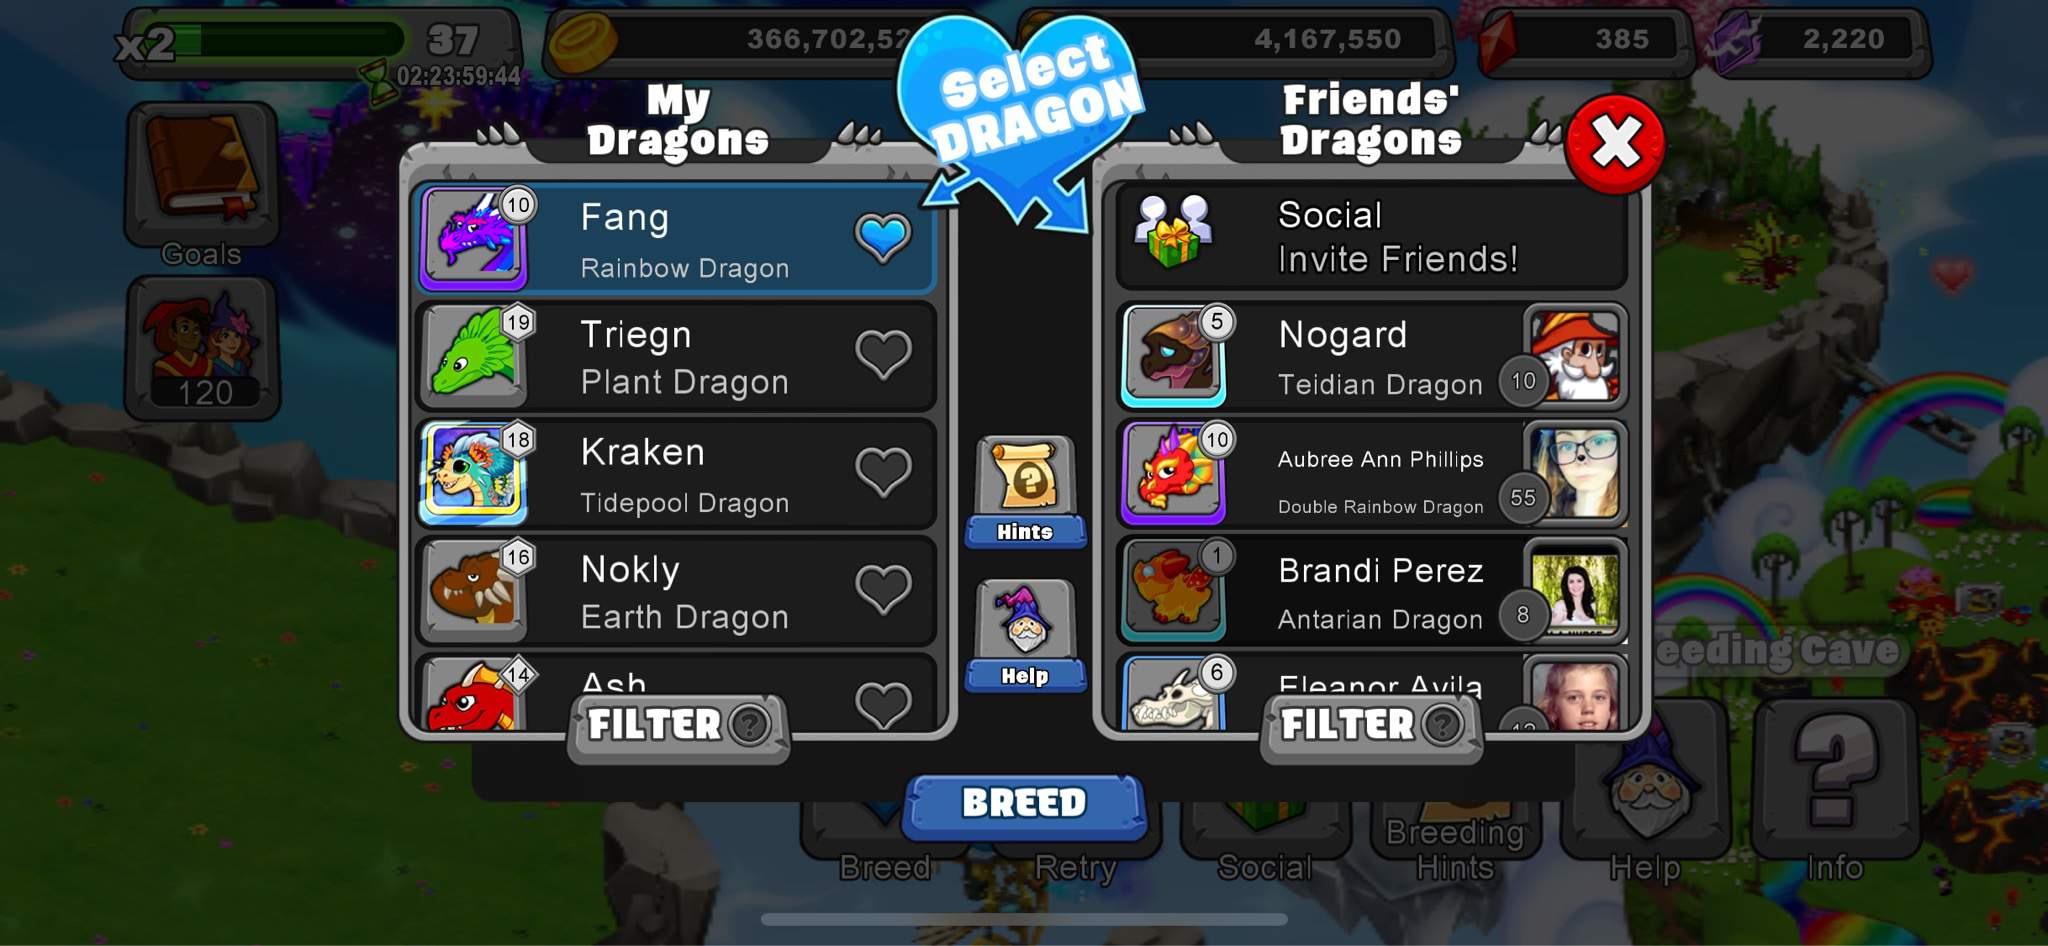 Cooperative Breeding Dragonvale Amino